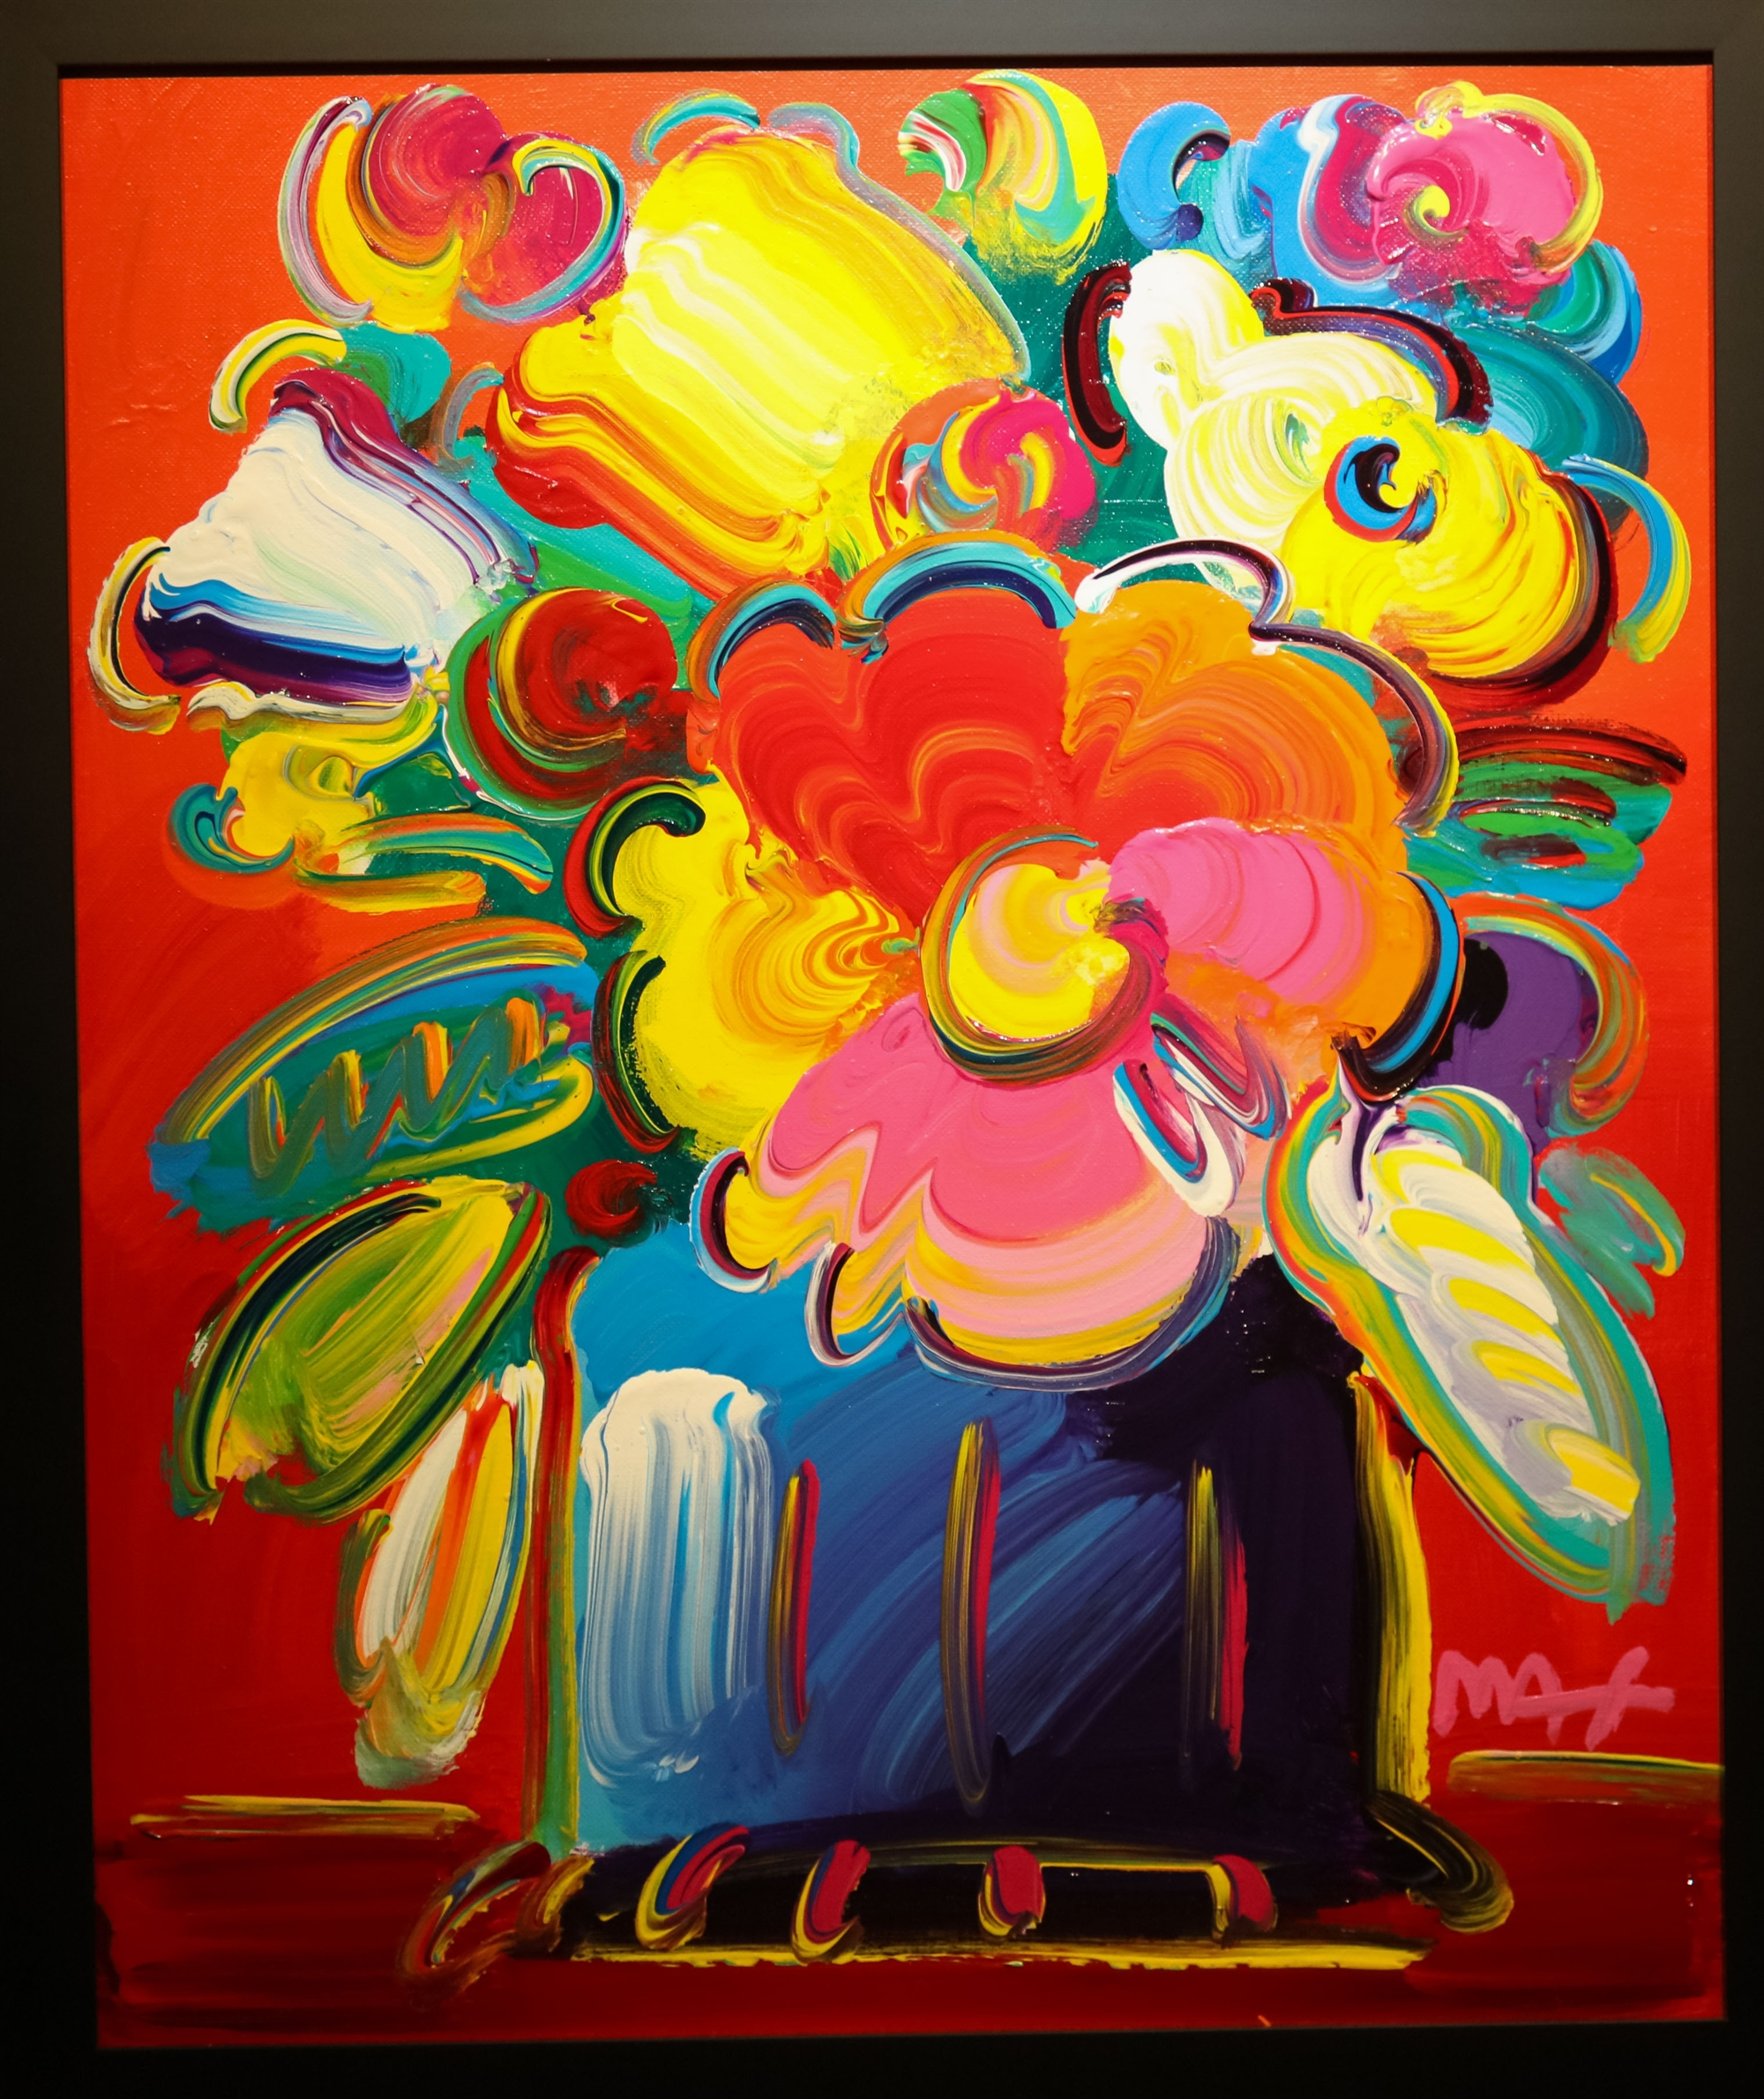 ABSTRACT FLOWERS -Available as Commission by Peter Max